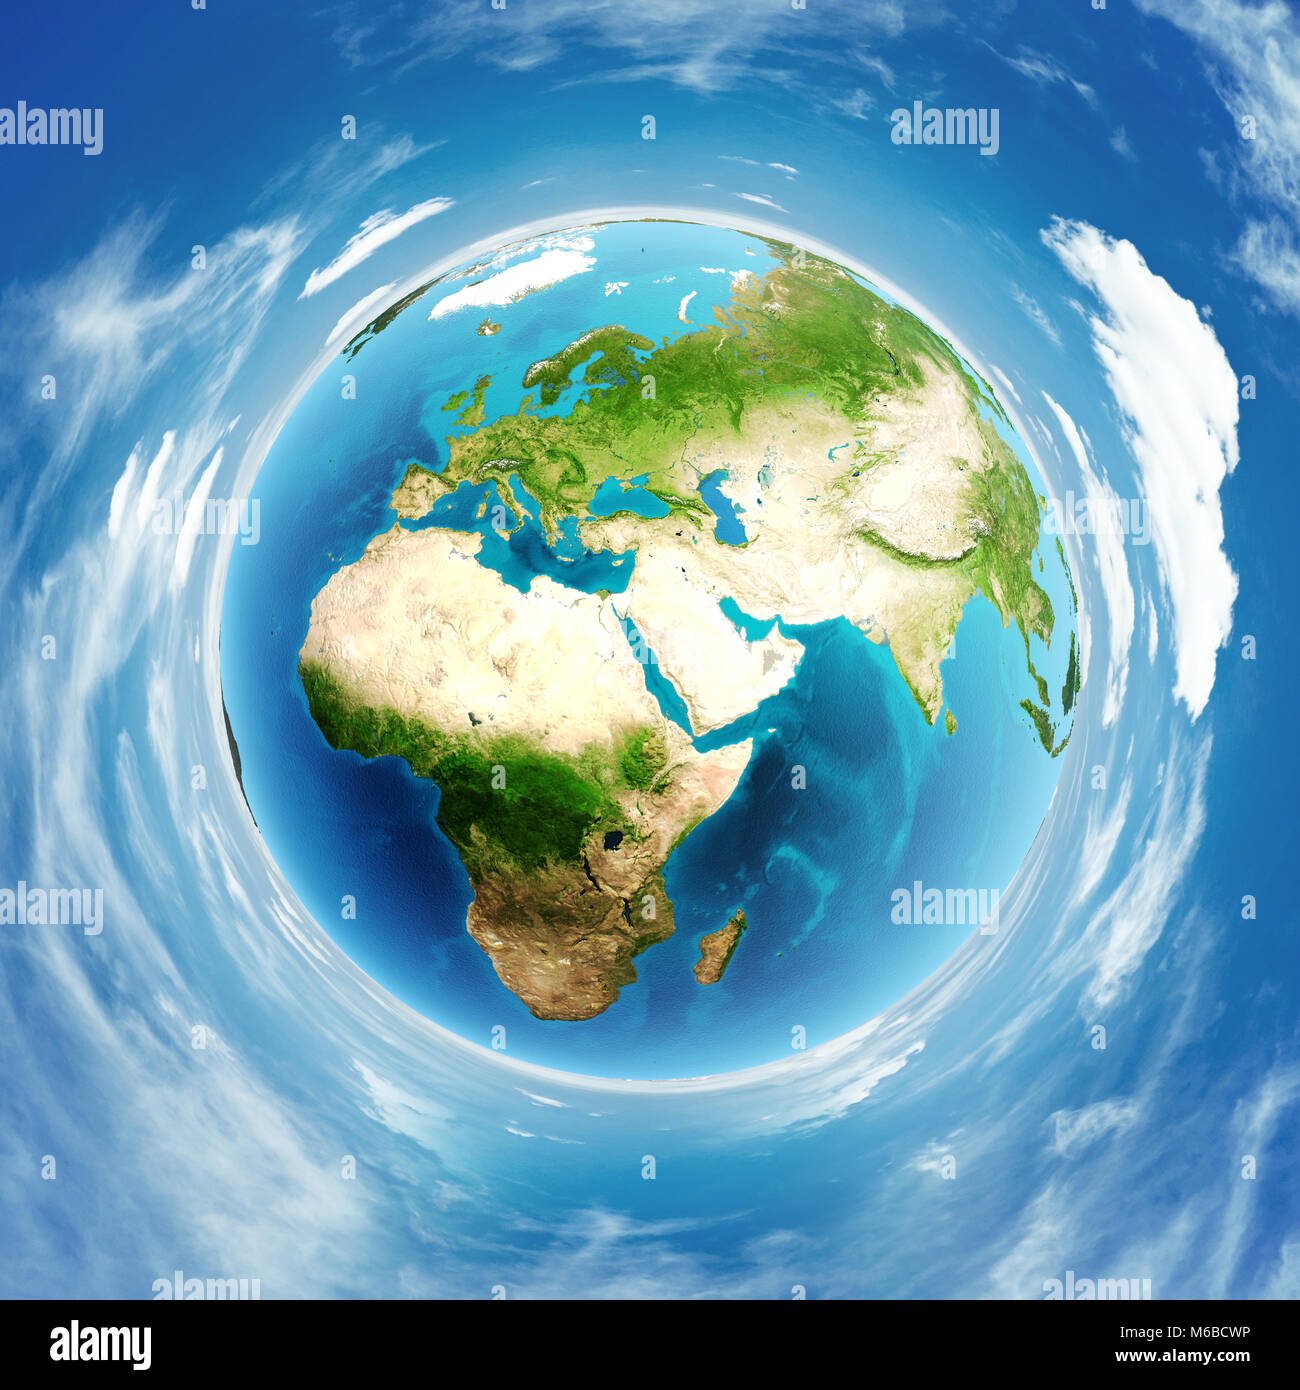 Planet Earth real relief 3d rendering - Stock Image